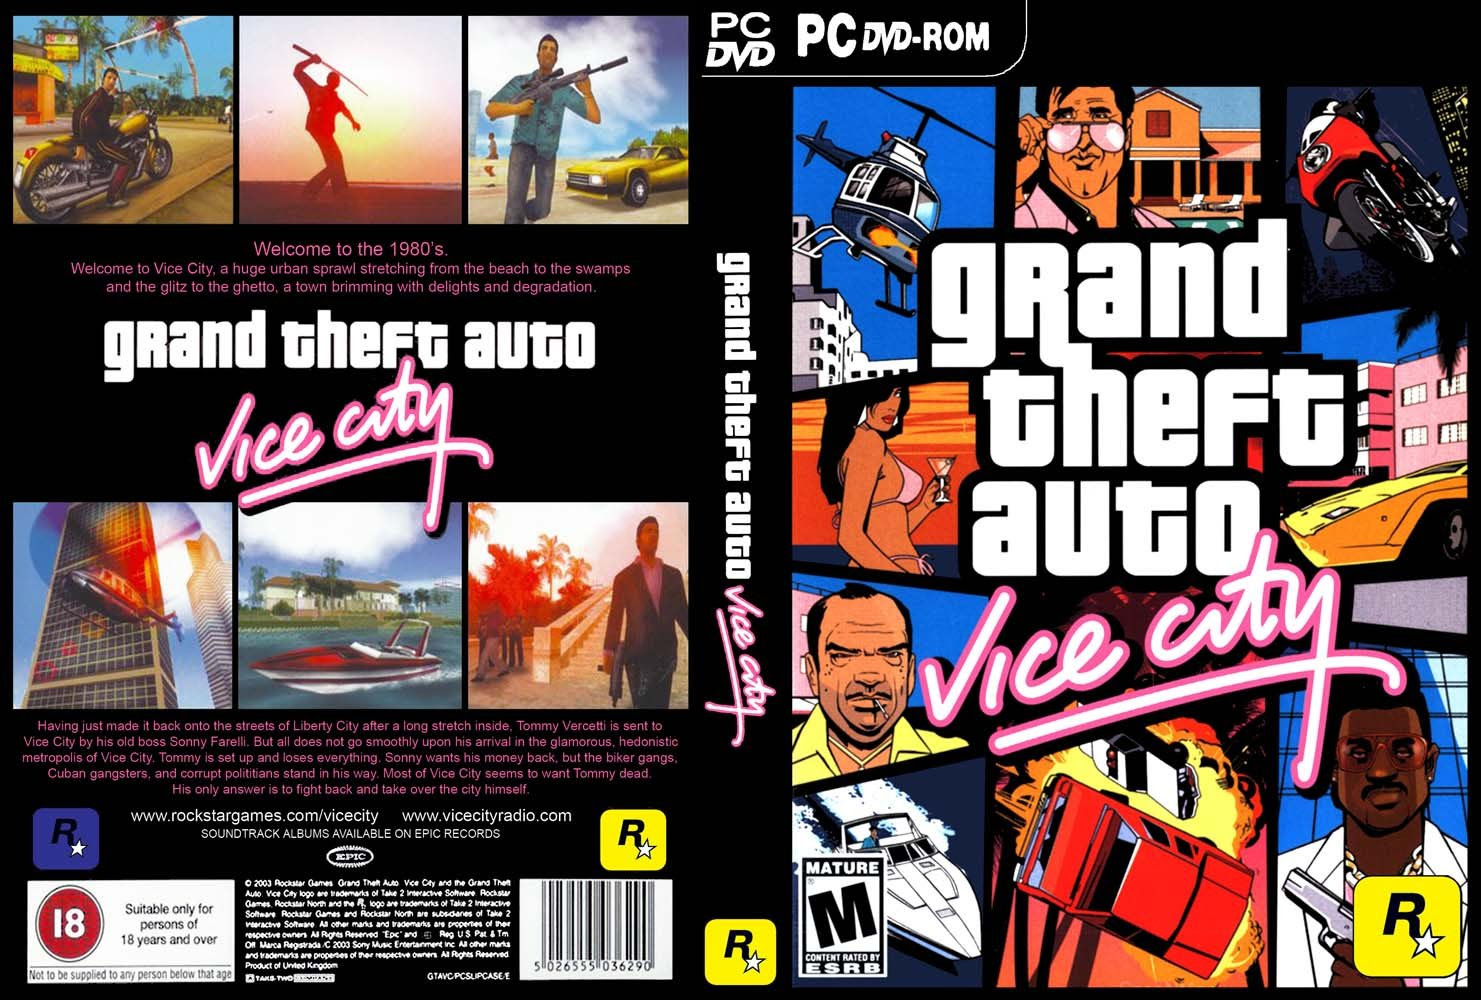 gta vice city free download for windows 8.1 torrent